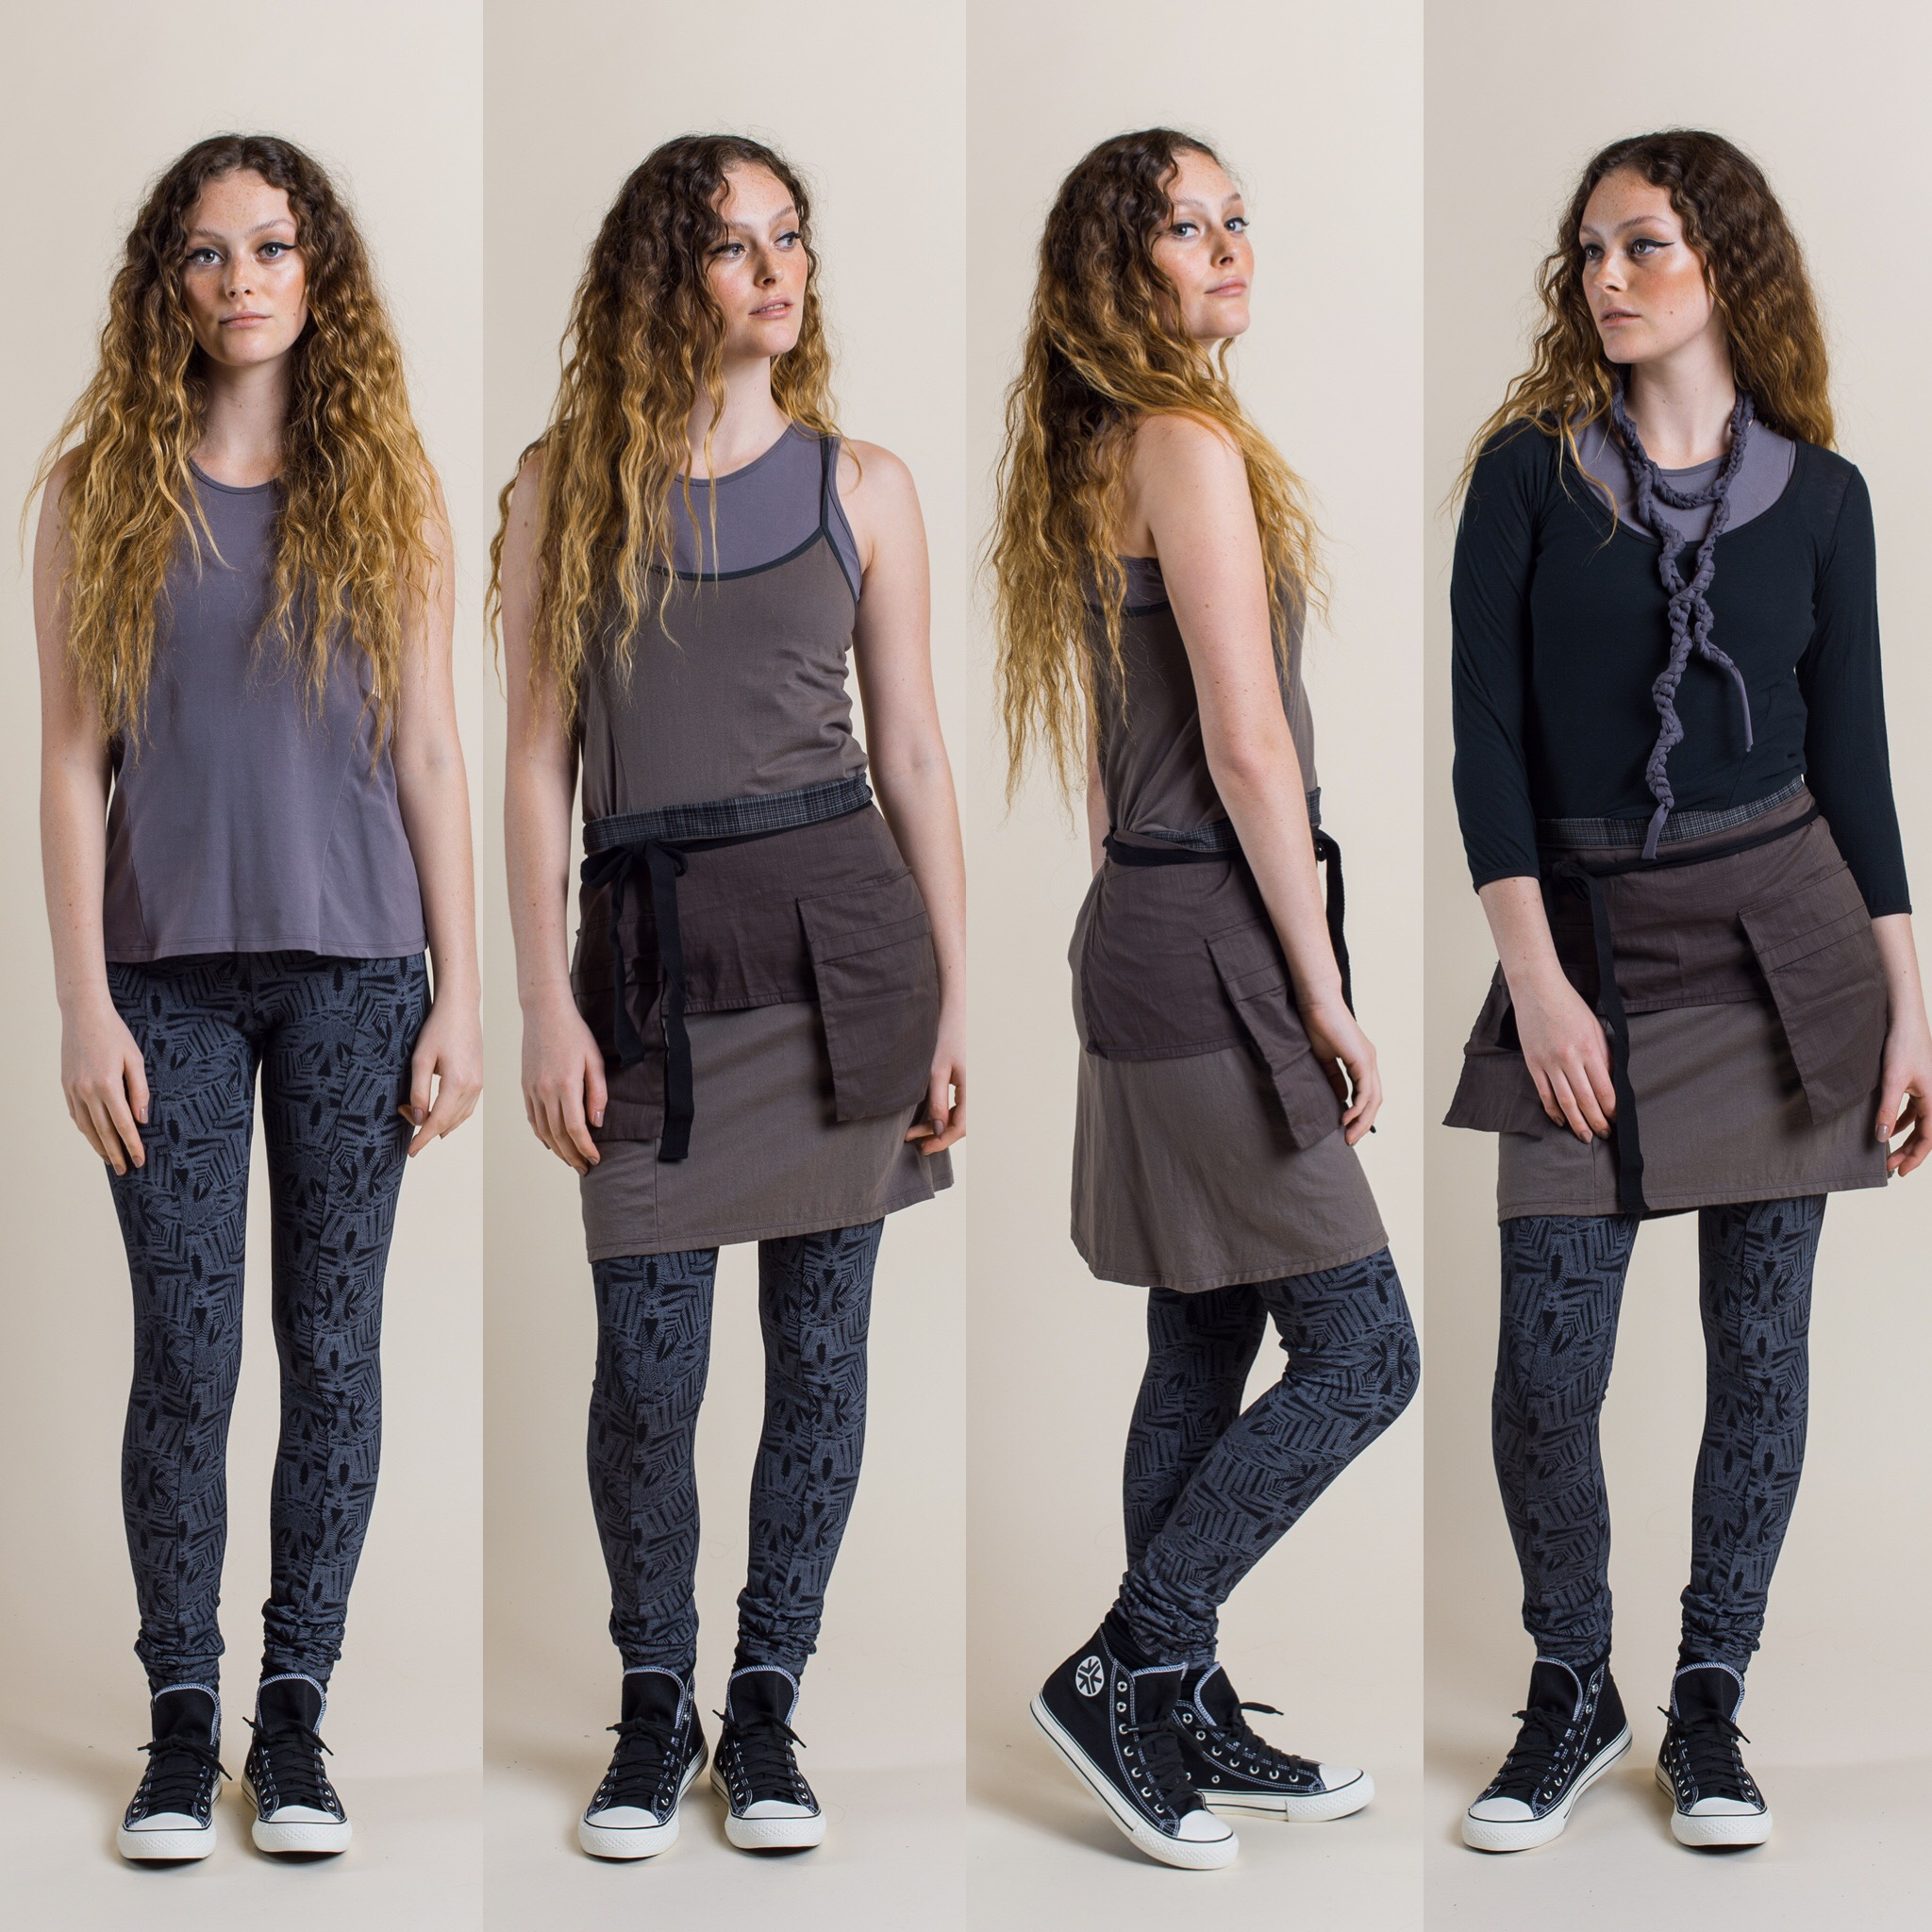 Fern Printed Leggings in shadow with Tansy Top in Dove(far left) , add Nasturtium Slip in rock and Pocket Belt in mineral colour. Swivel top black and Tendril necklace/belt added (far right)